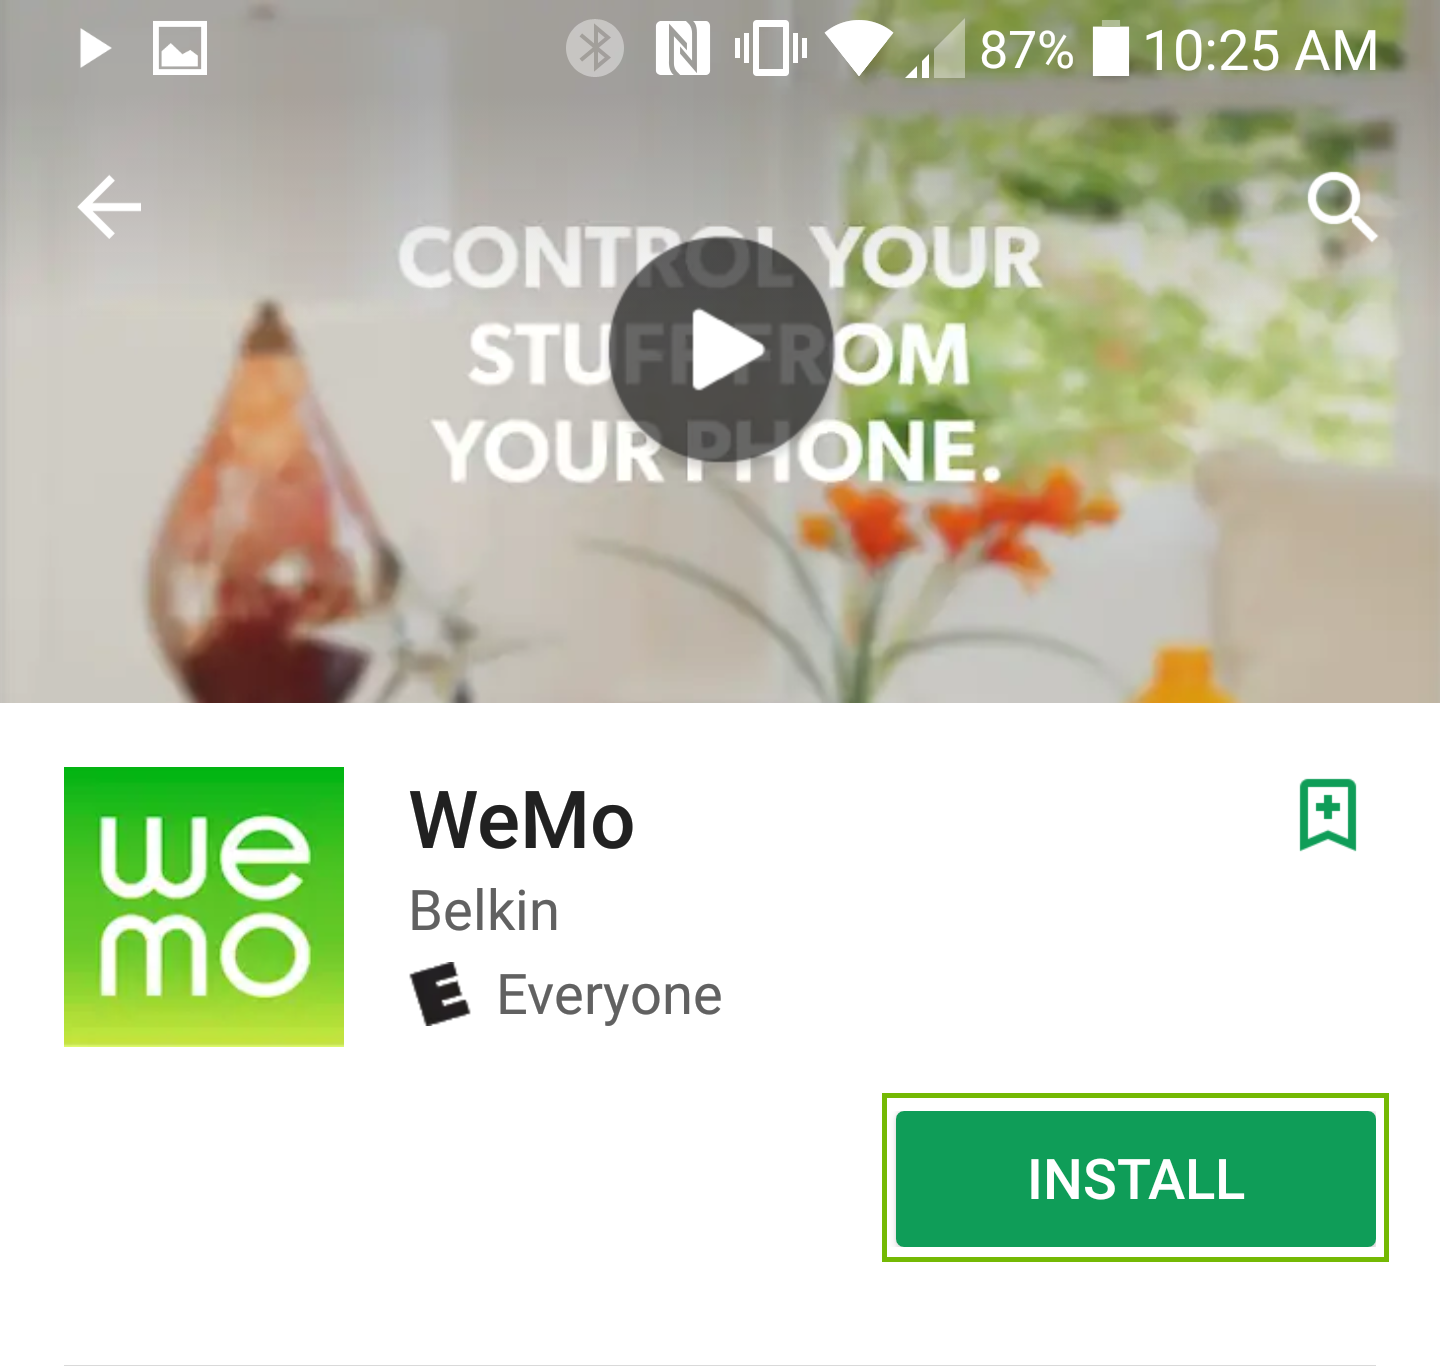 WeMo app store page with Install button highlighted.